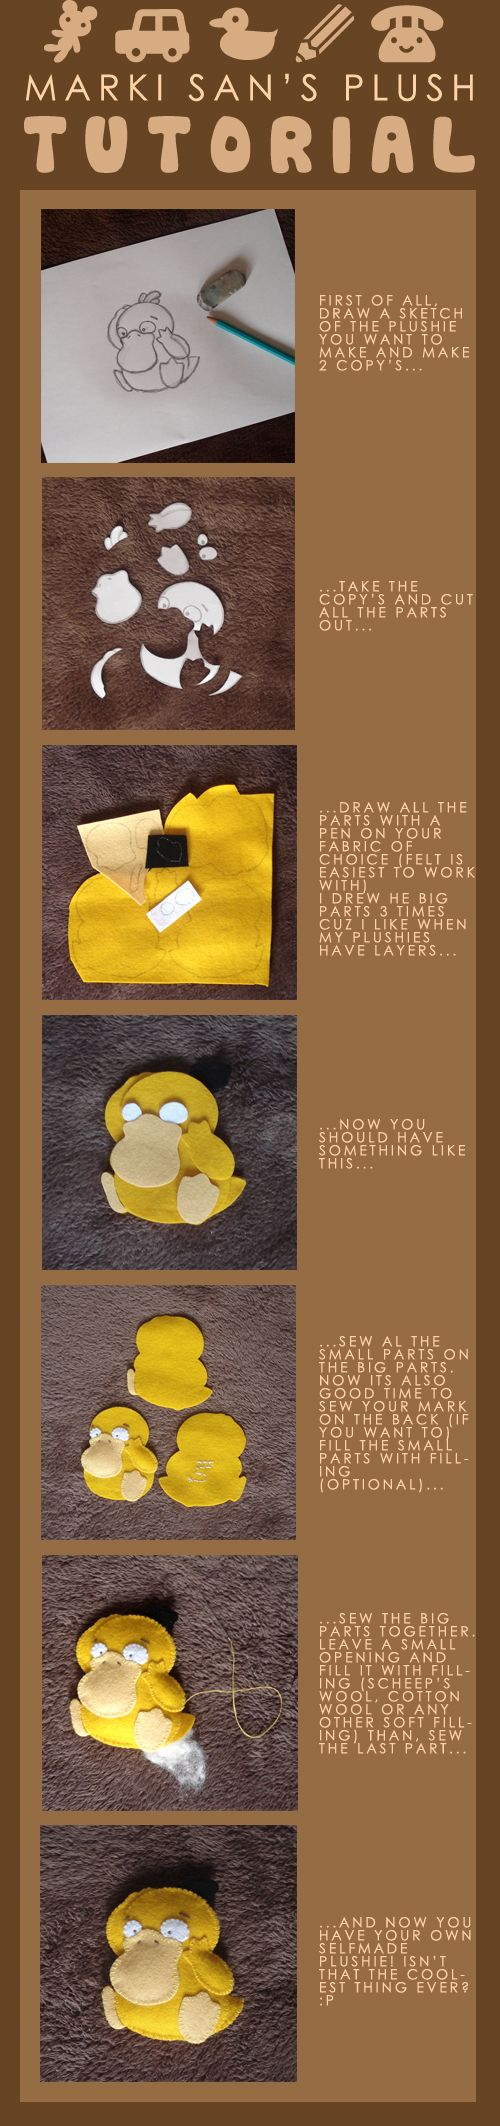 Make your own plushie! Great for Pokemon or any other cute little figures you want to memorialize in felt.